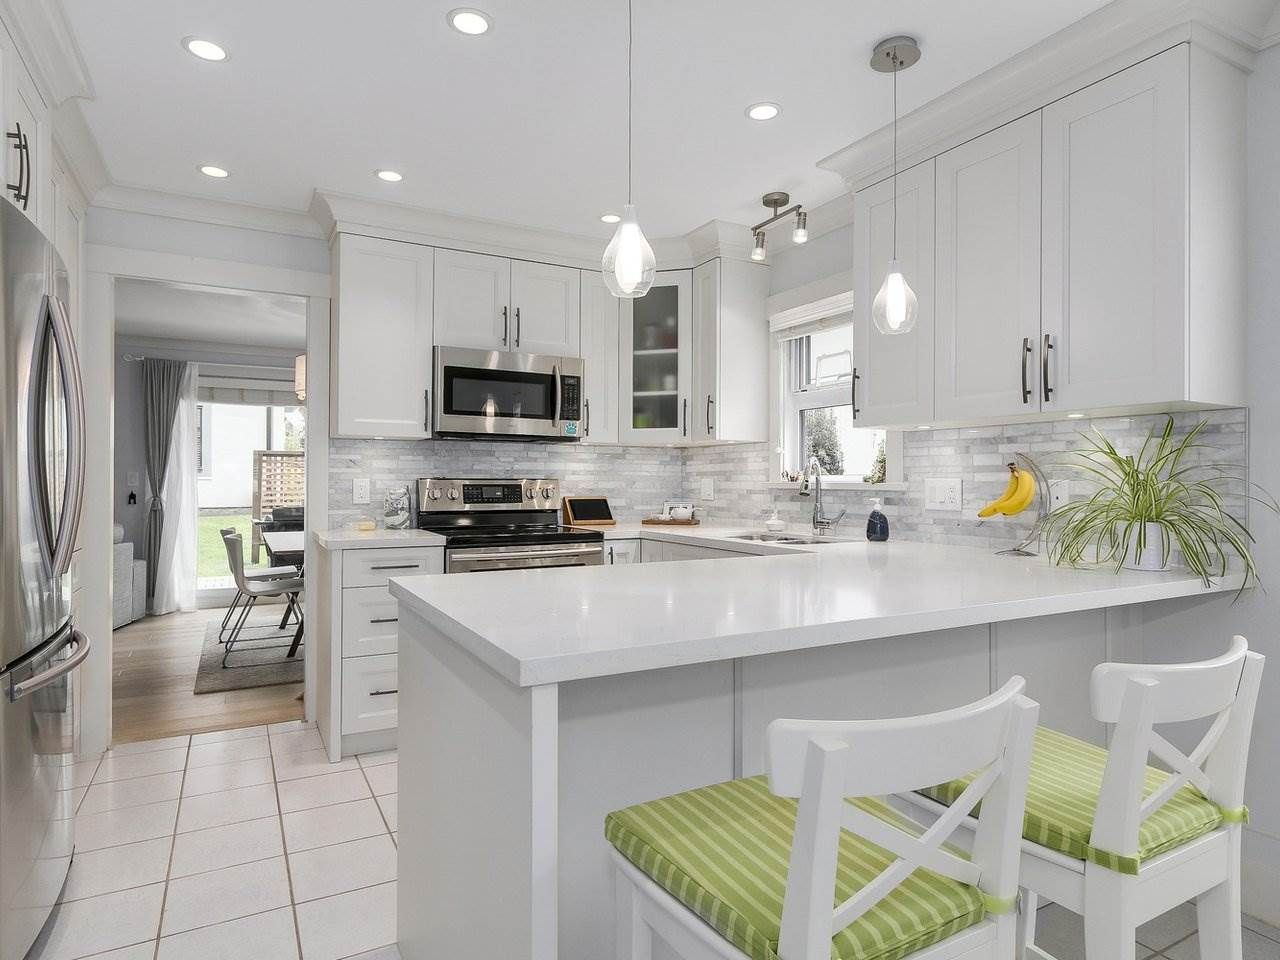 """Main Photo: 38 889 TOBRUCK Avenue in North Vancouver: Hamilton Townhouse for sale in """"TOBRUCK GARDENS"""" : MLS®# R2209623"""